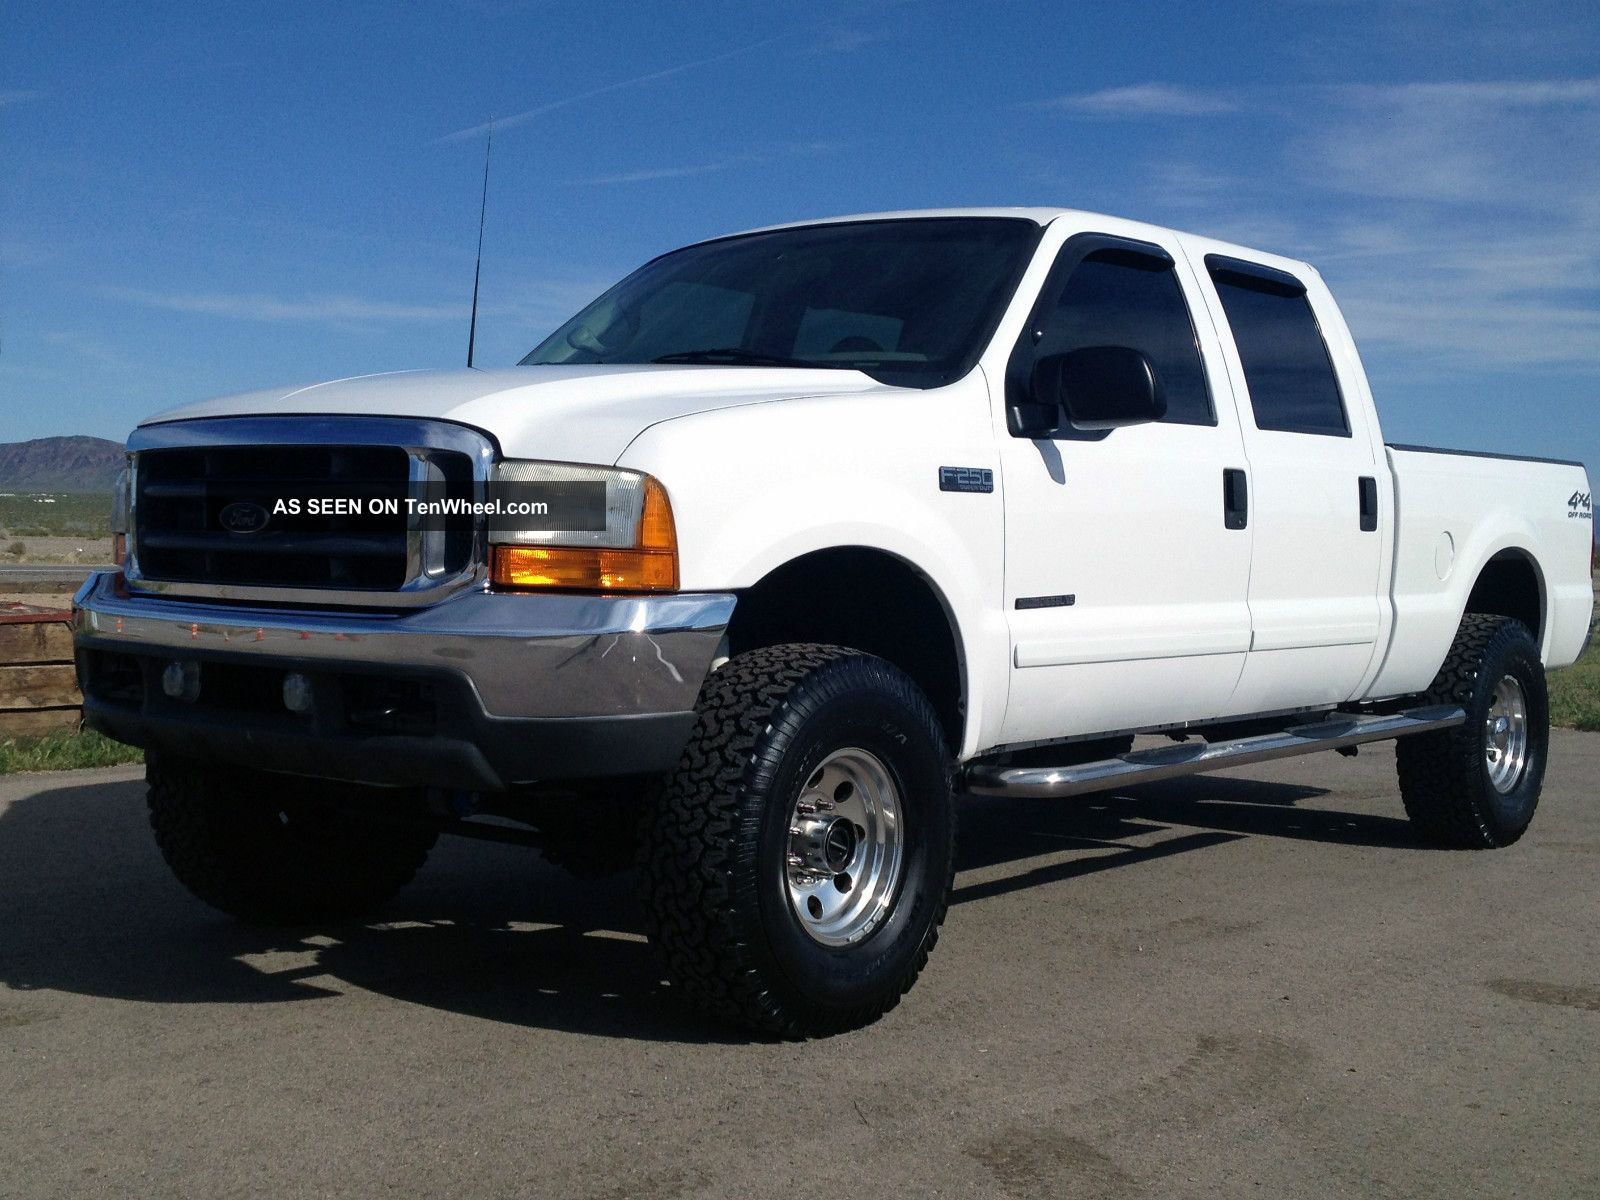 2001 ford f250 crew cab specs. Black Bedroom Furniture Sets. Home Design Ideas